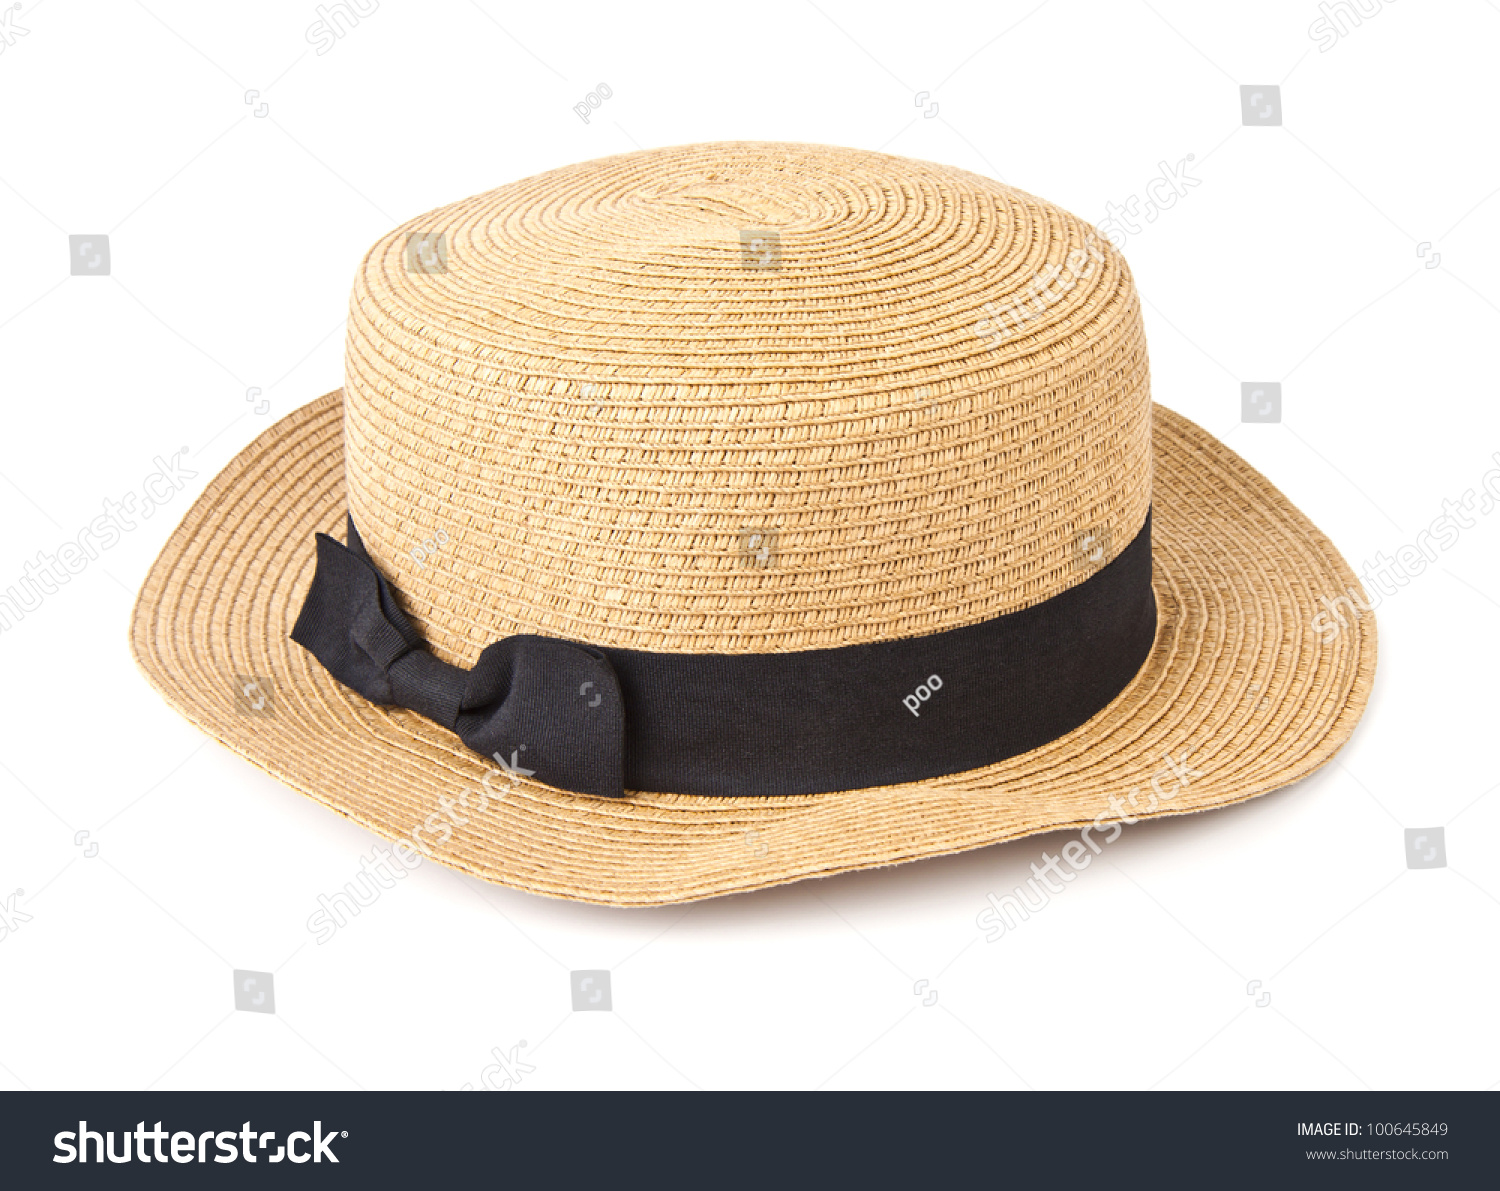 5bba6080561 Weaving hat with clipping path isolated on white background.